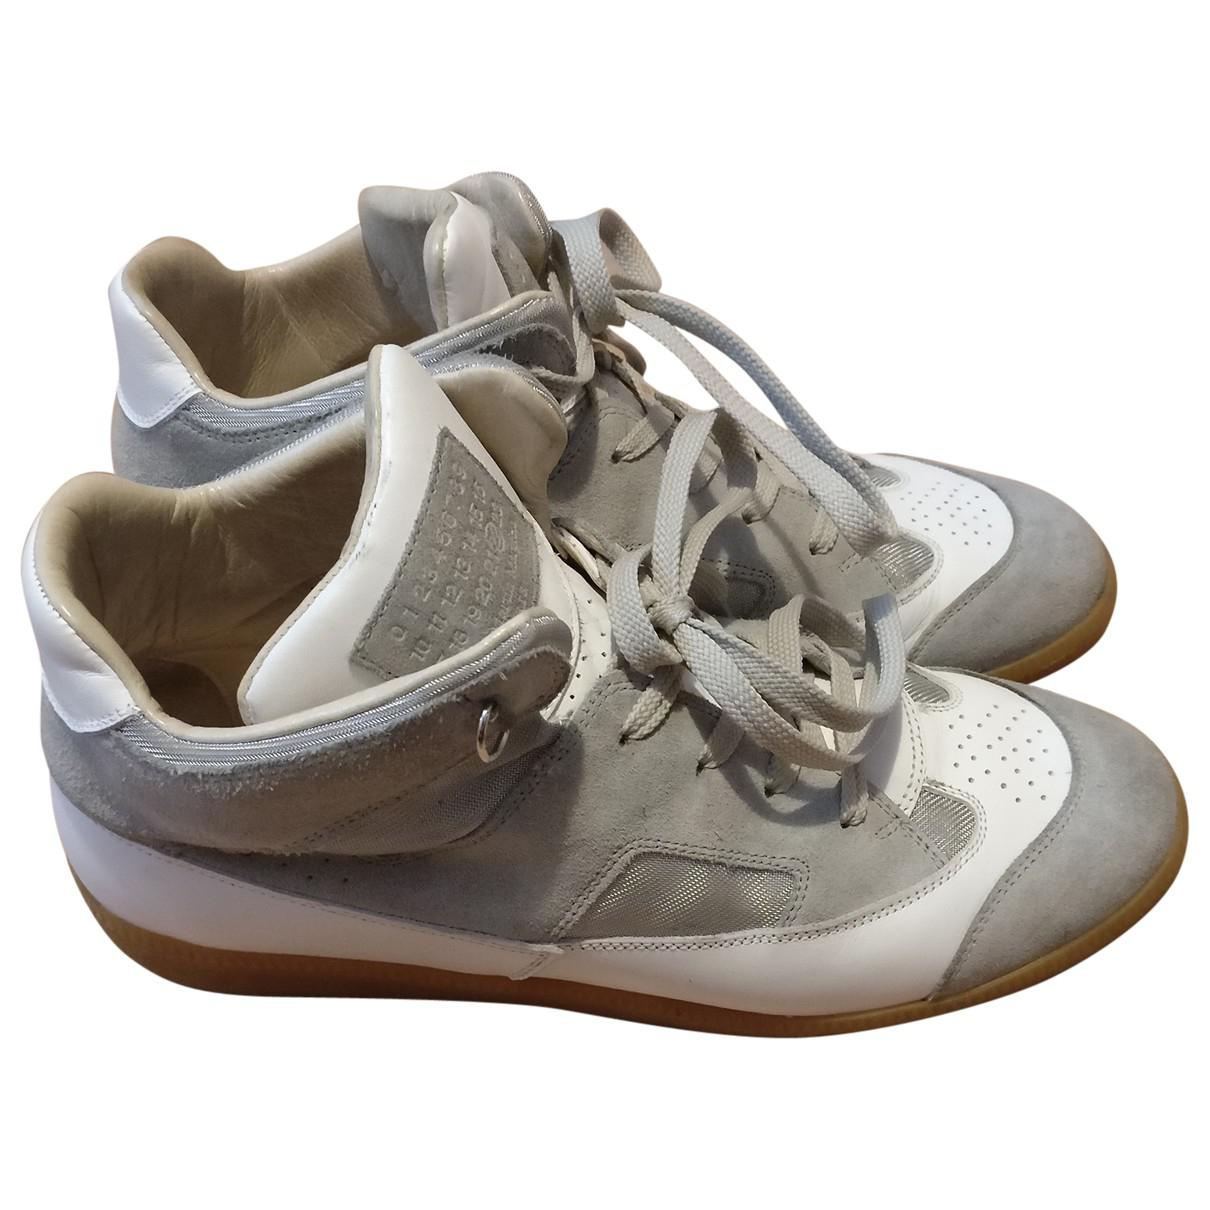 Pre-owned - Leather high trainers Maison Martin Margiela